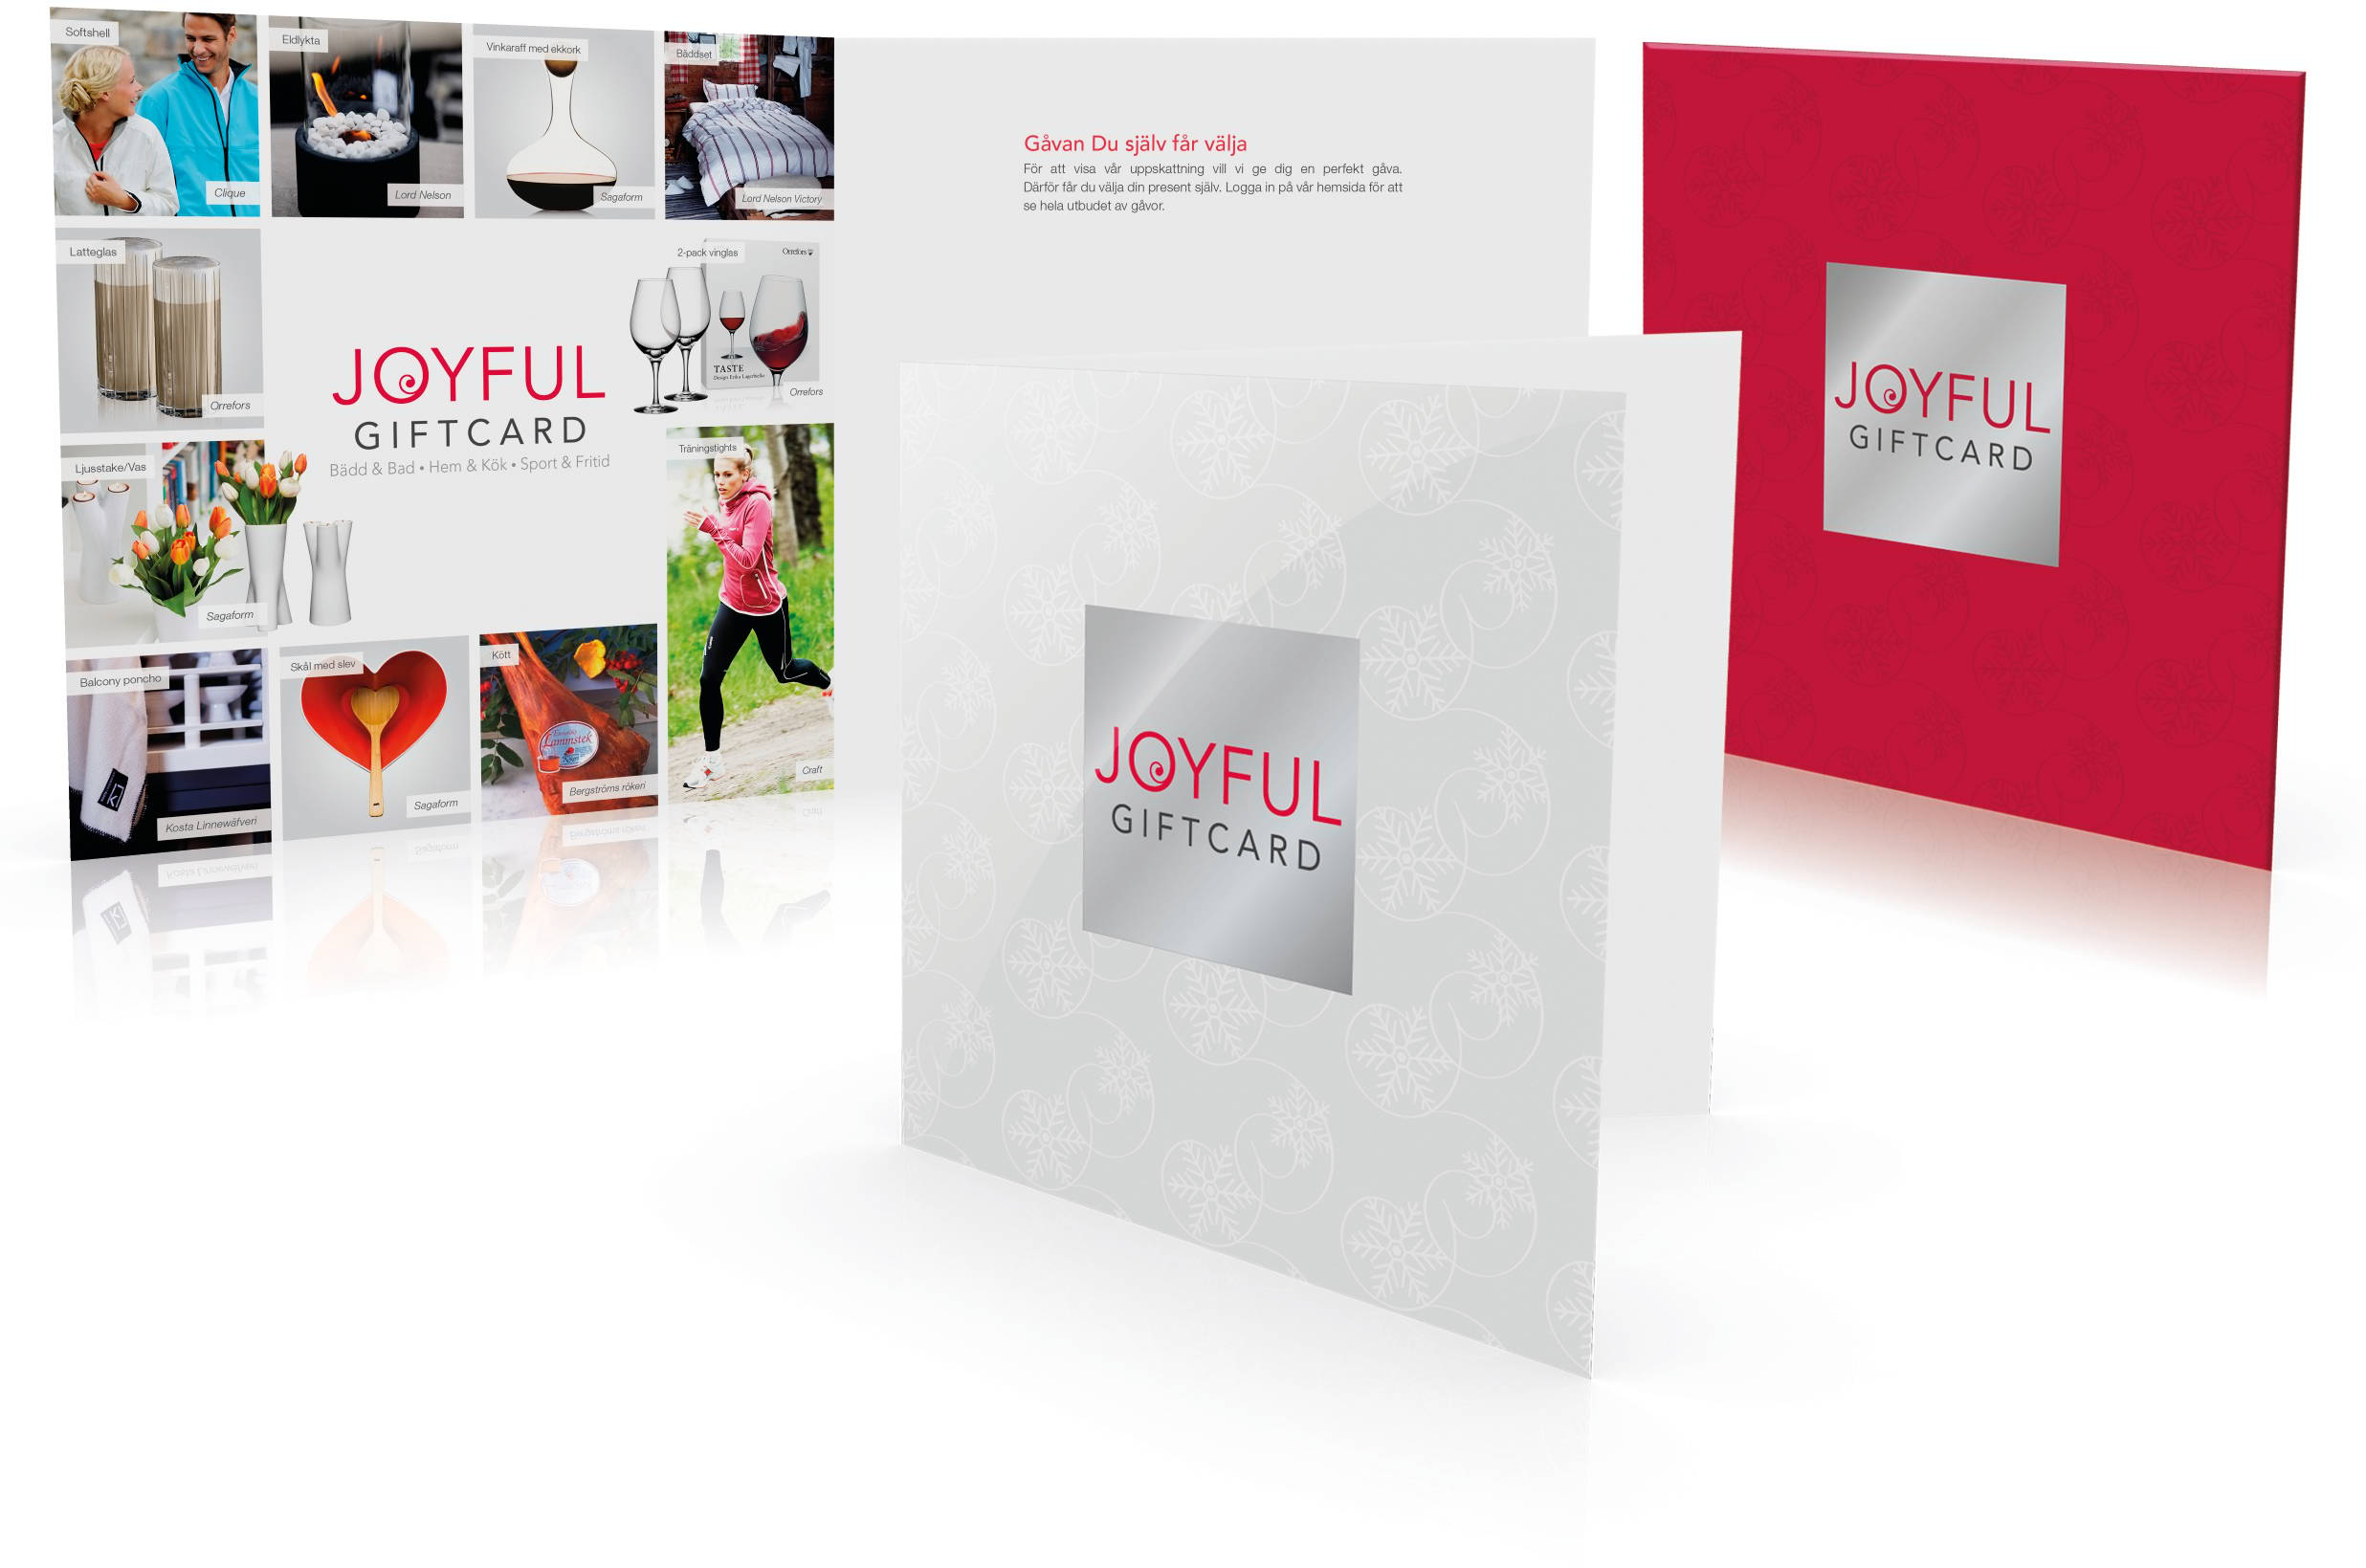 Image result for Joyful Giftcard